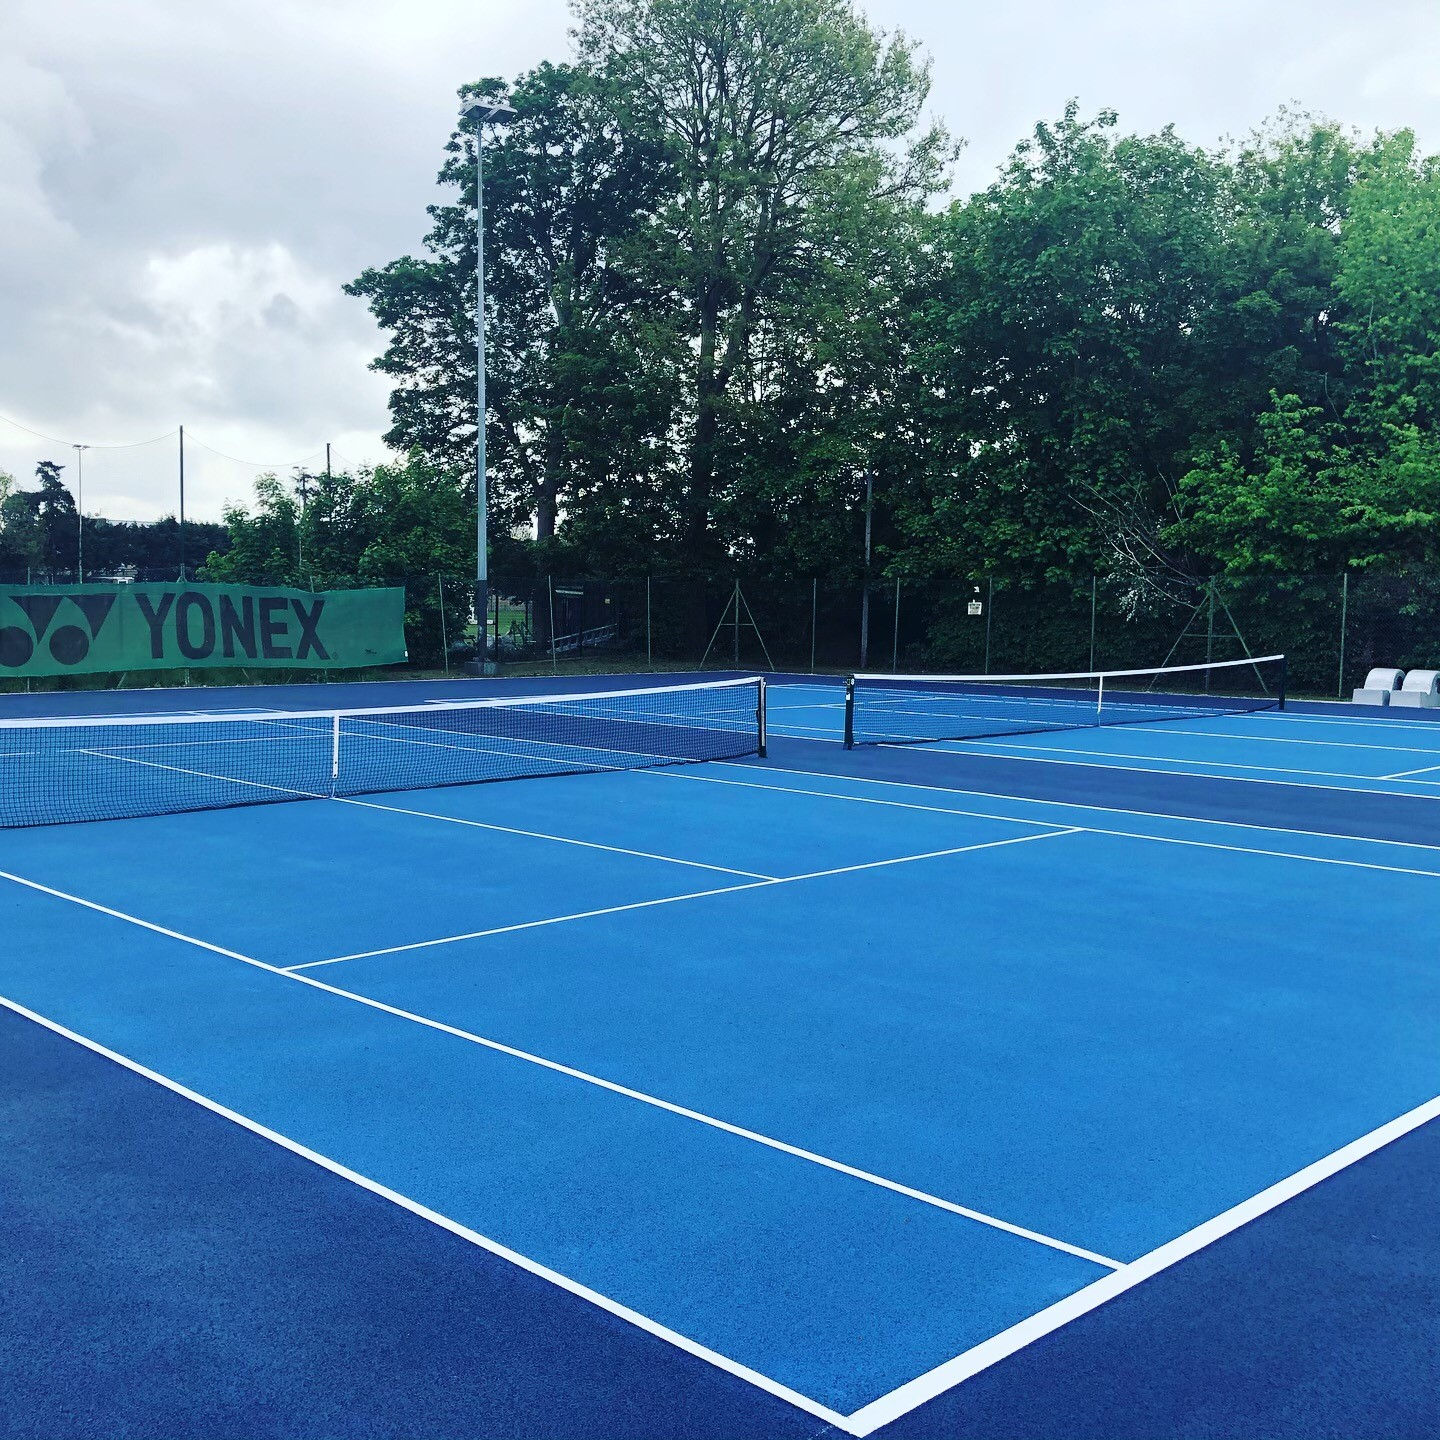 Asphalt tennis courts resurfacing at Hoddesdon Lawn Tennis Club in Hertfordshire